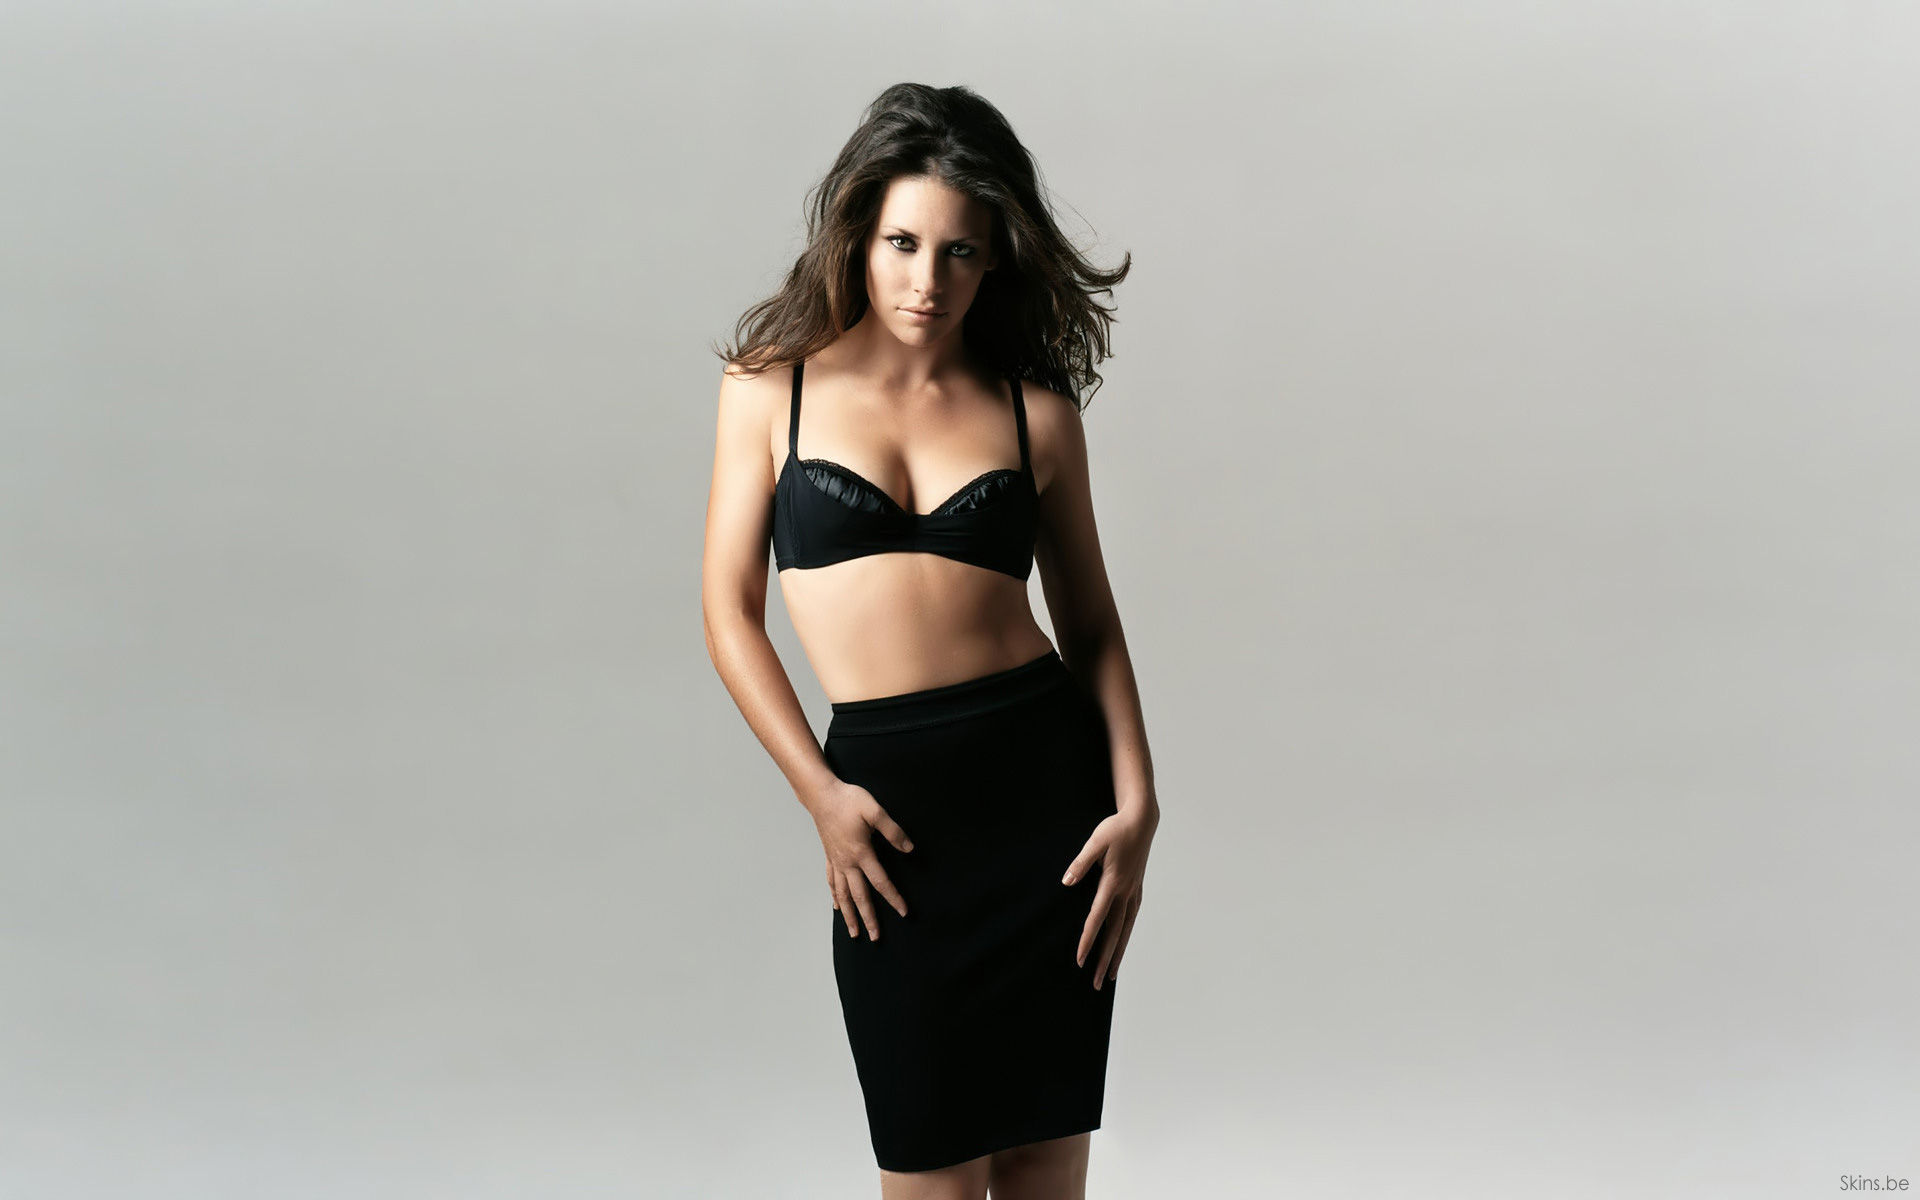 1920x1200 - Evangeline Lilly Wallpapers 25